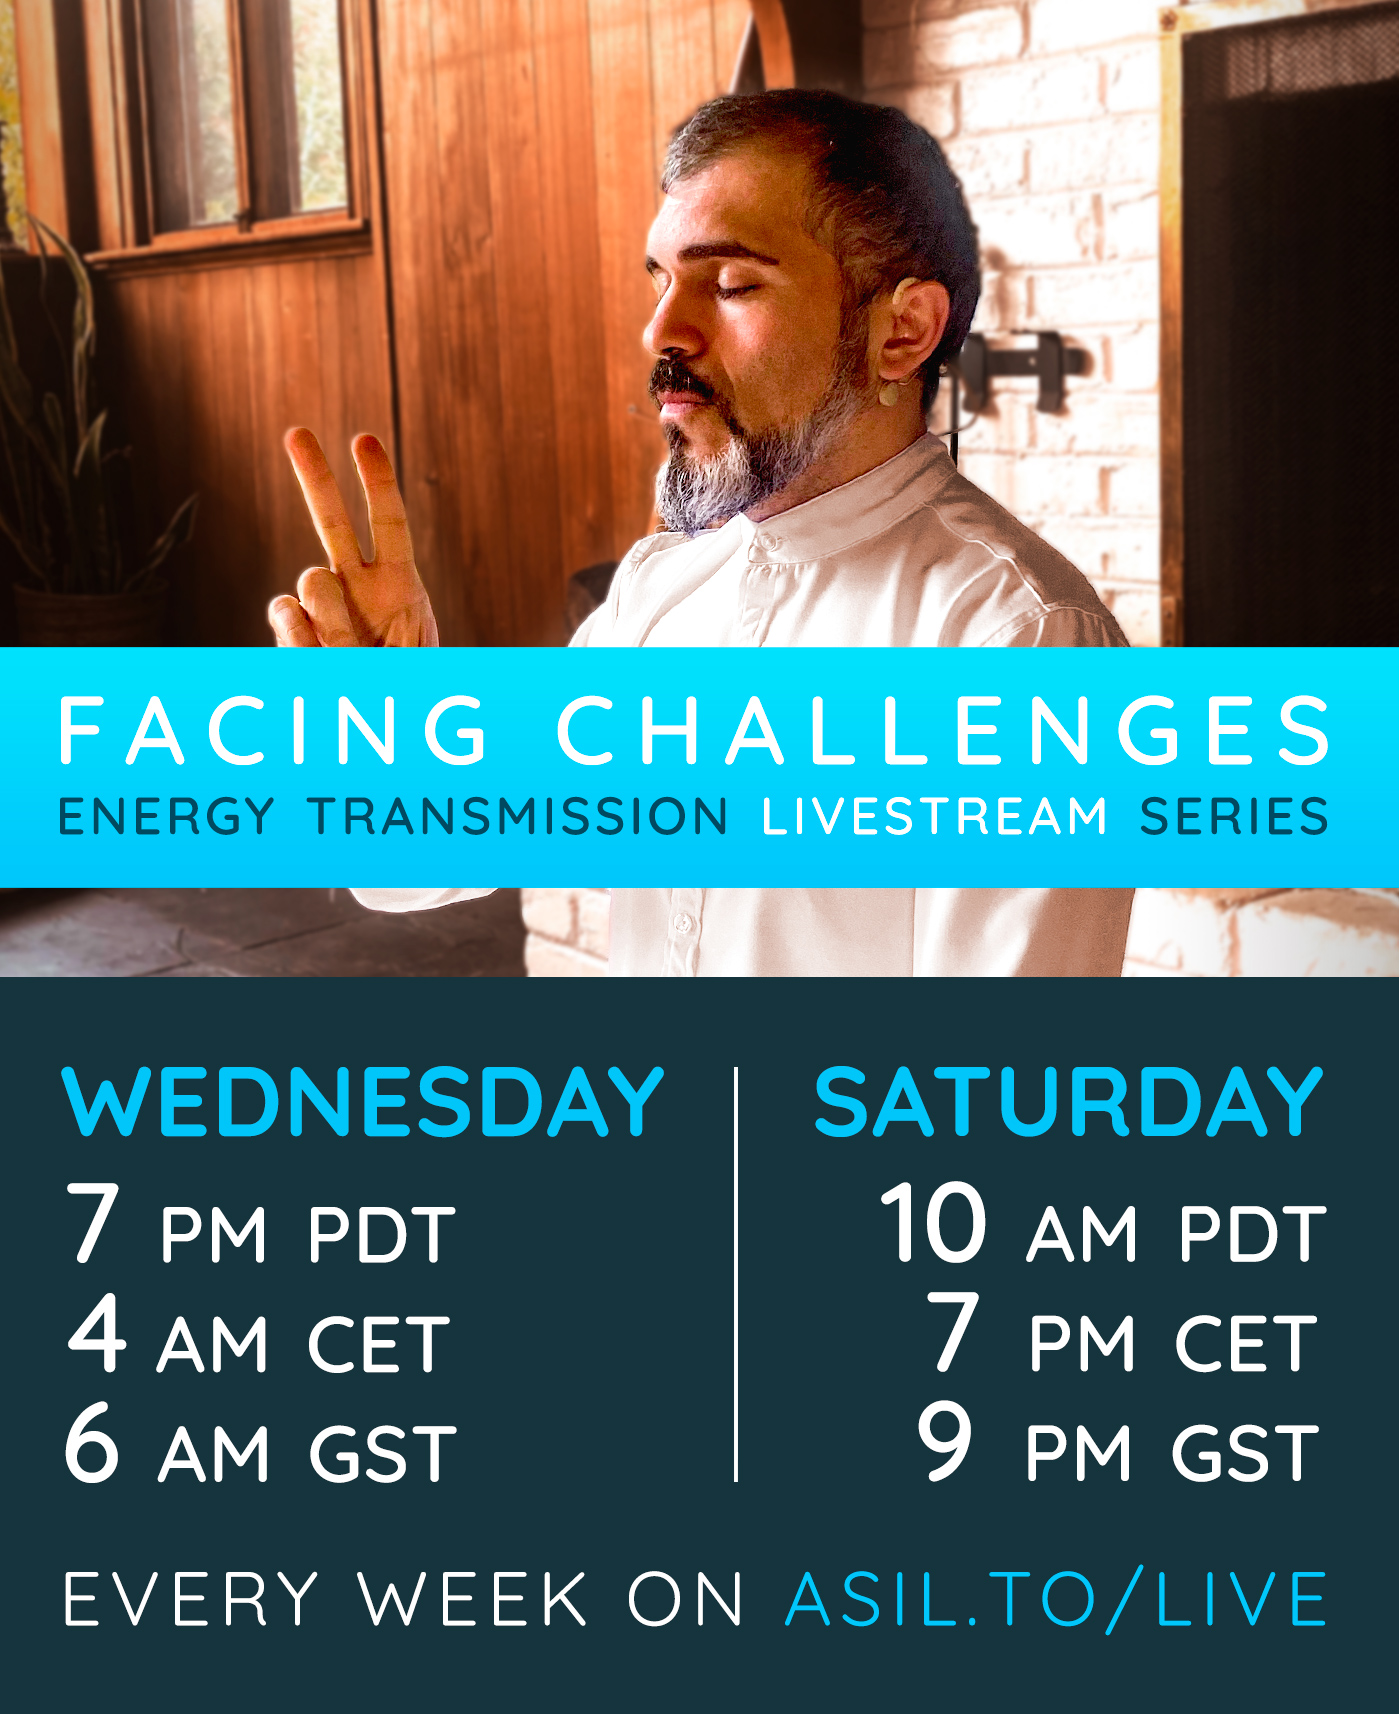 Facing Challenges - Energy Transmission Livestream Series